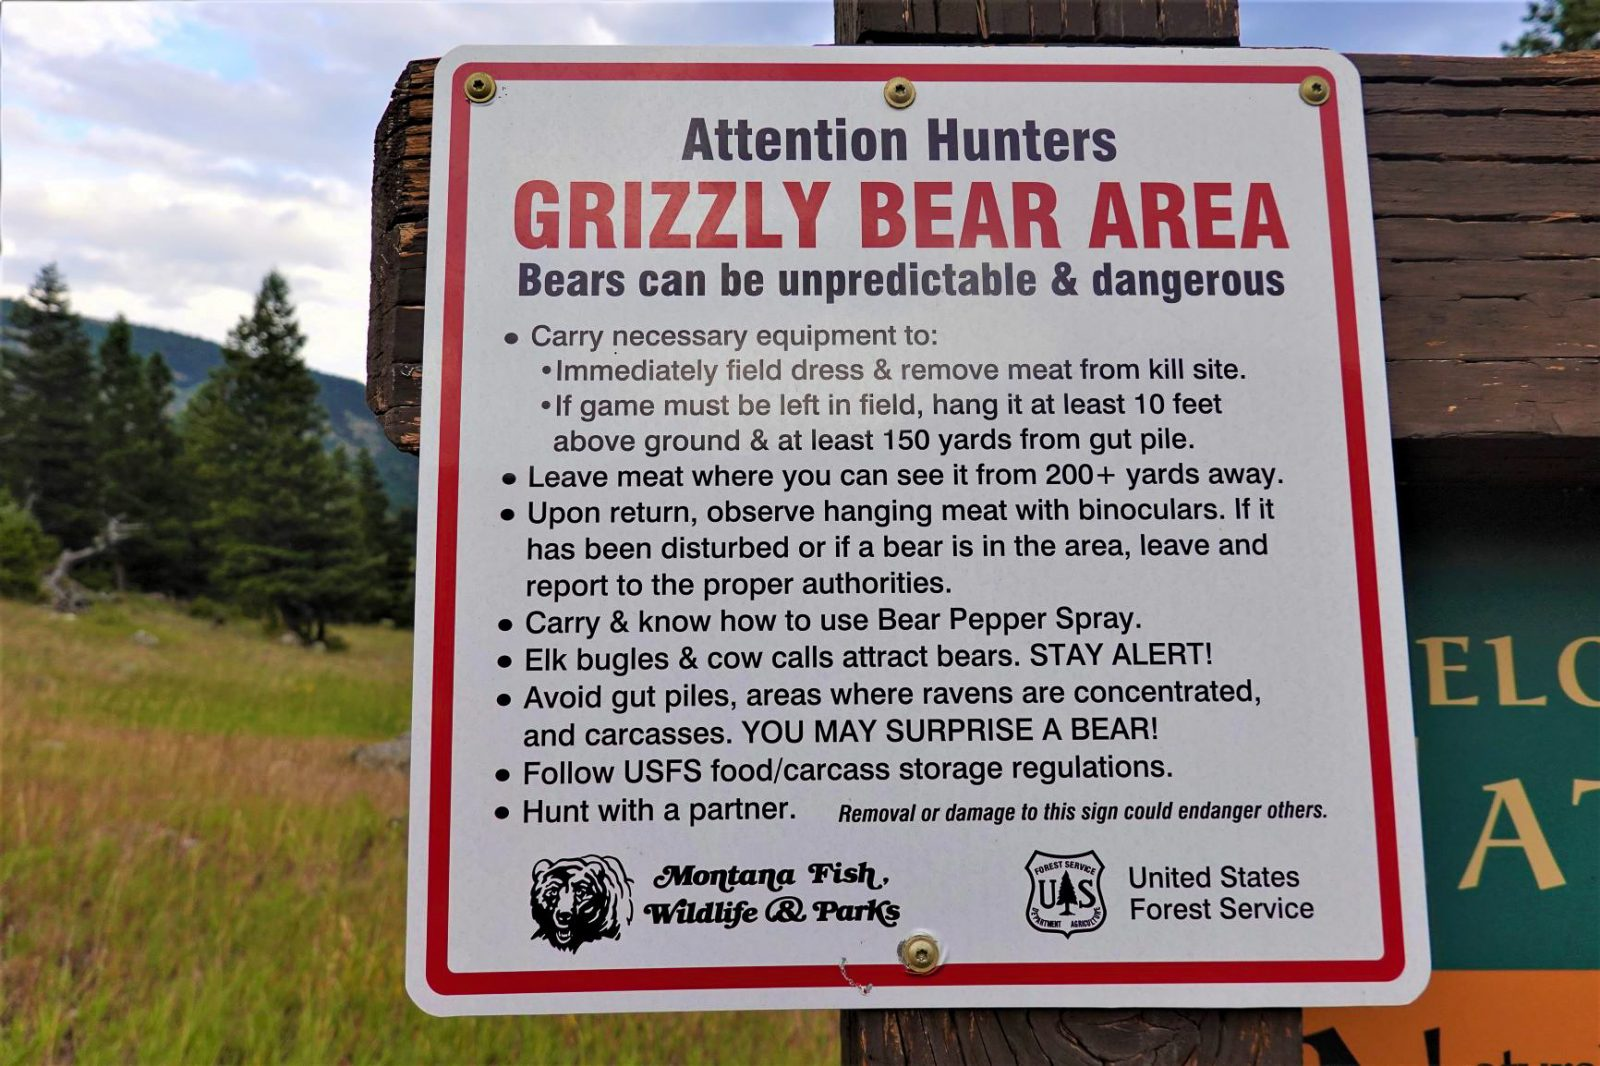 grizzly bear area